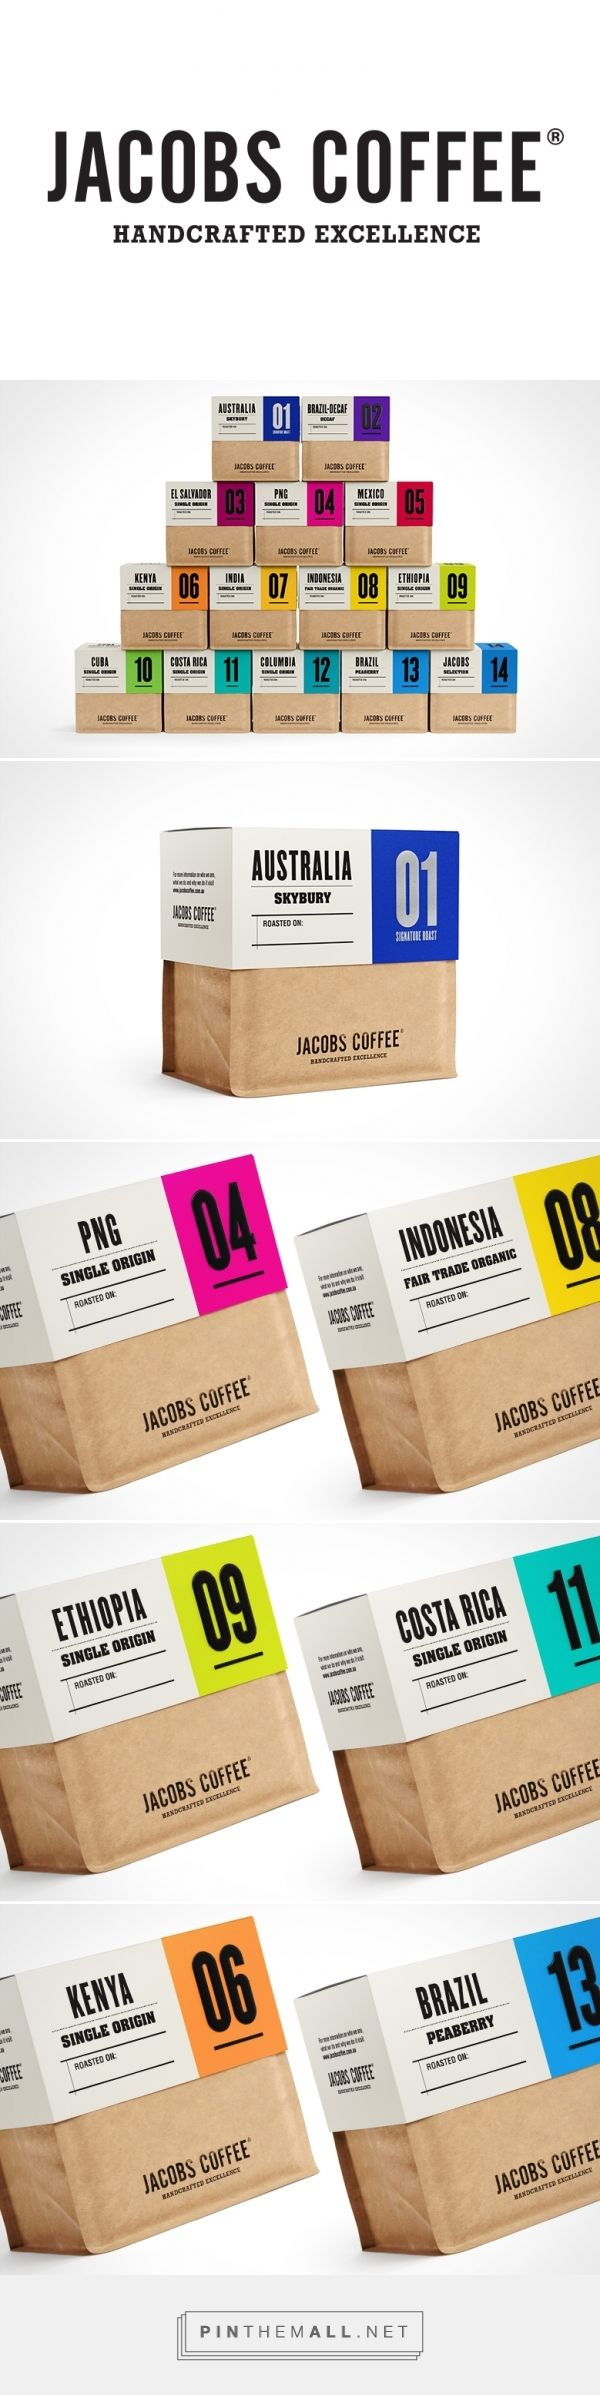 Jacobs Coffee Packaging by Depot Creative